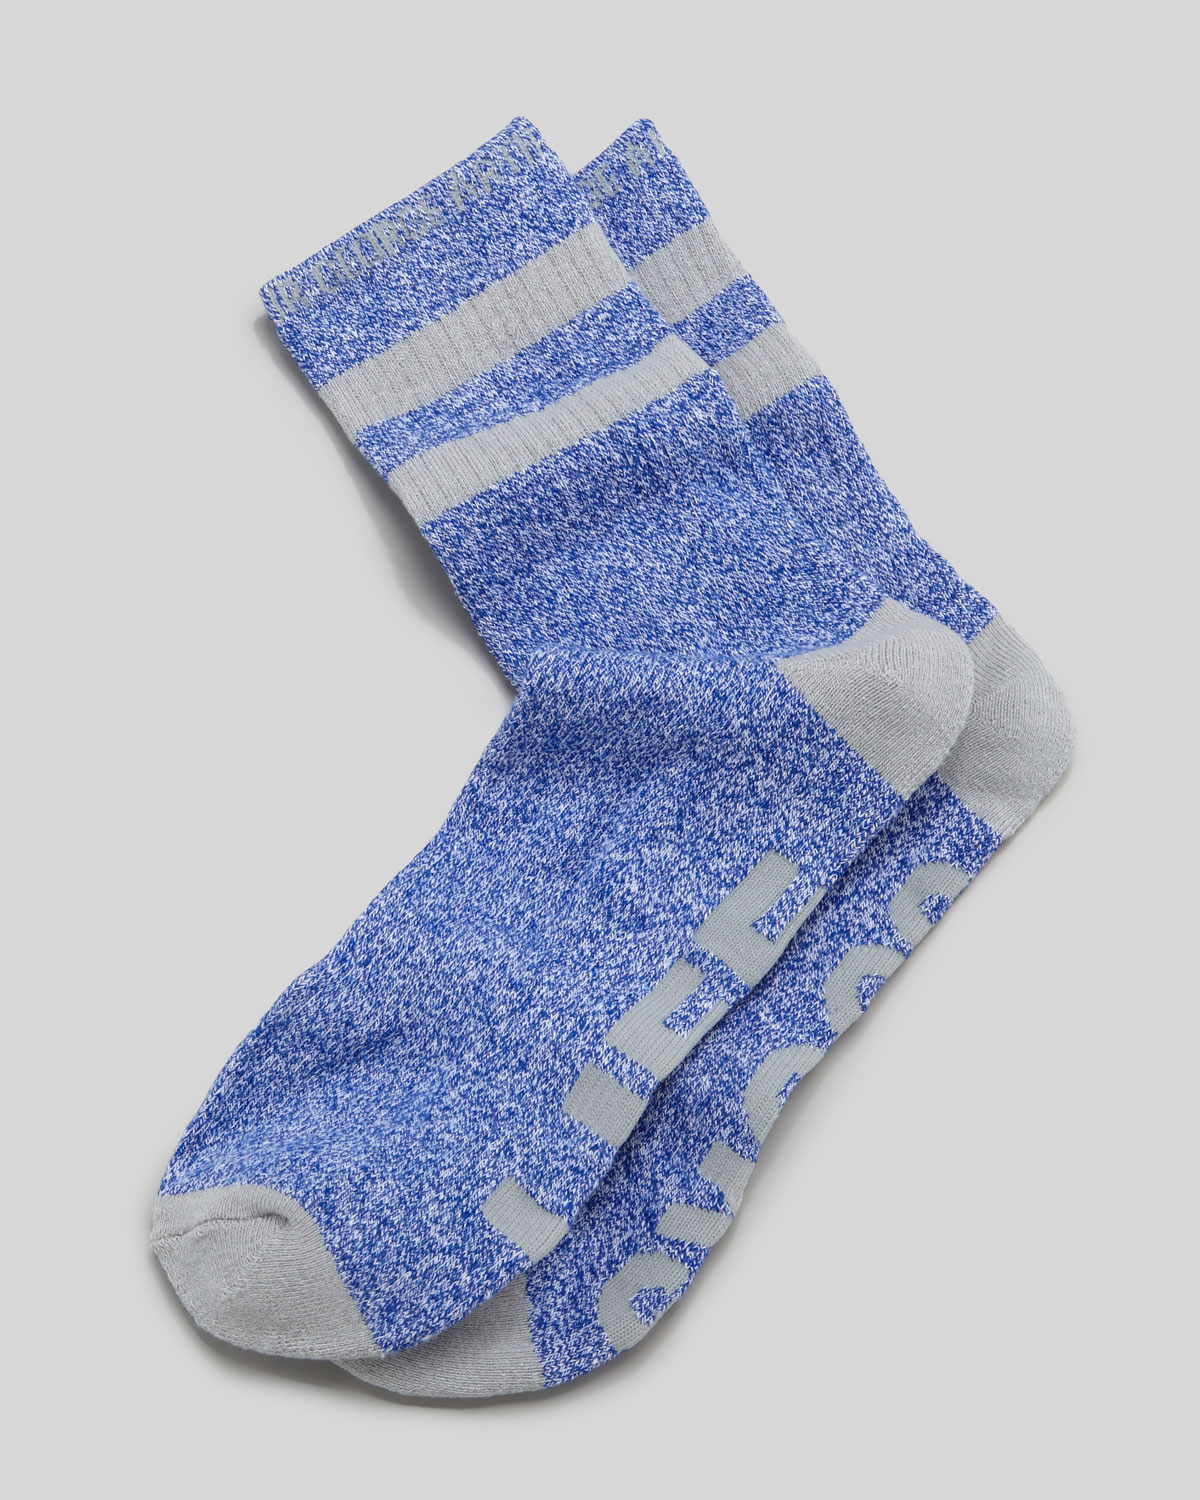 Life Socks Mens Socks, Navy/Gray   Arthur George by Robert Kardashian   Navy